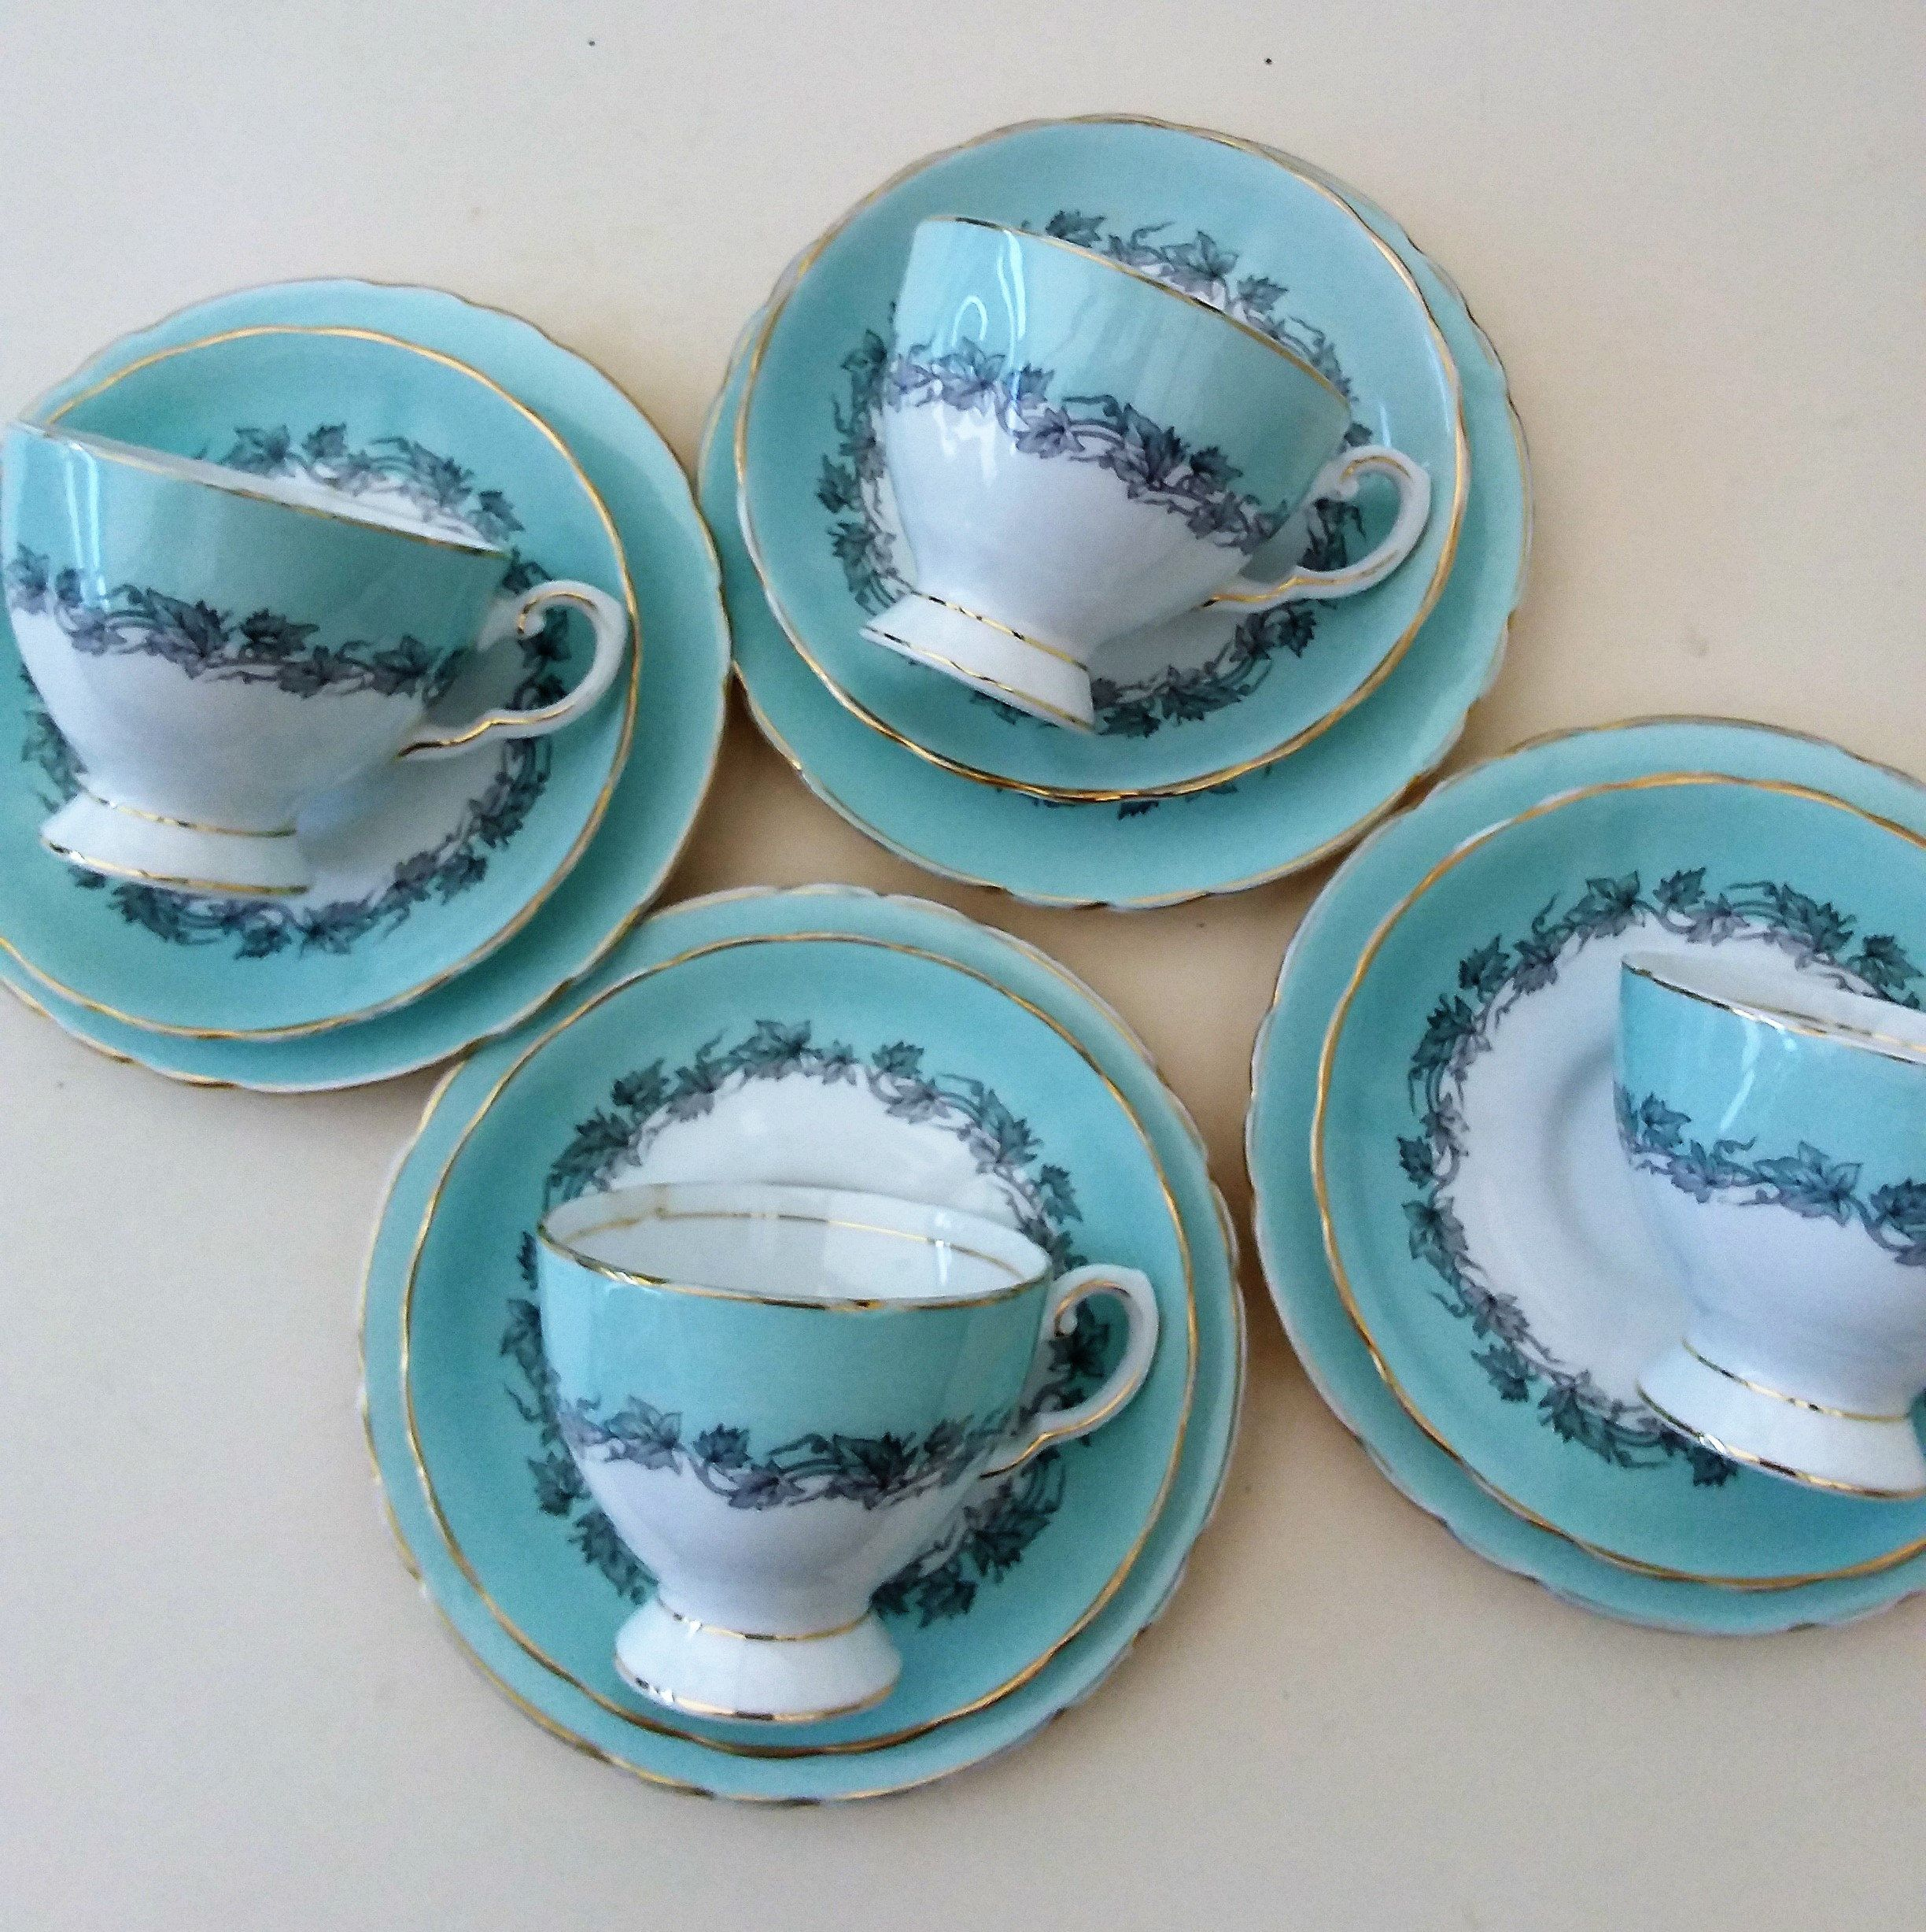 Royal Tuscan China Trio Chinacraft Aristocrat Tea Cups Saucers And Plates Trios Of Fine English China English China China Tea Sets Tea Cups